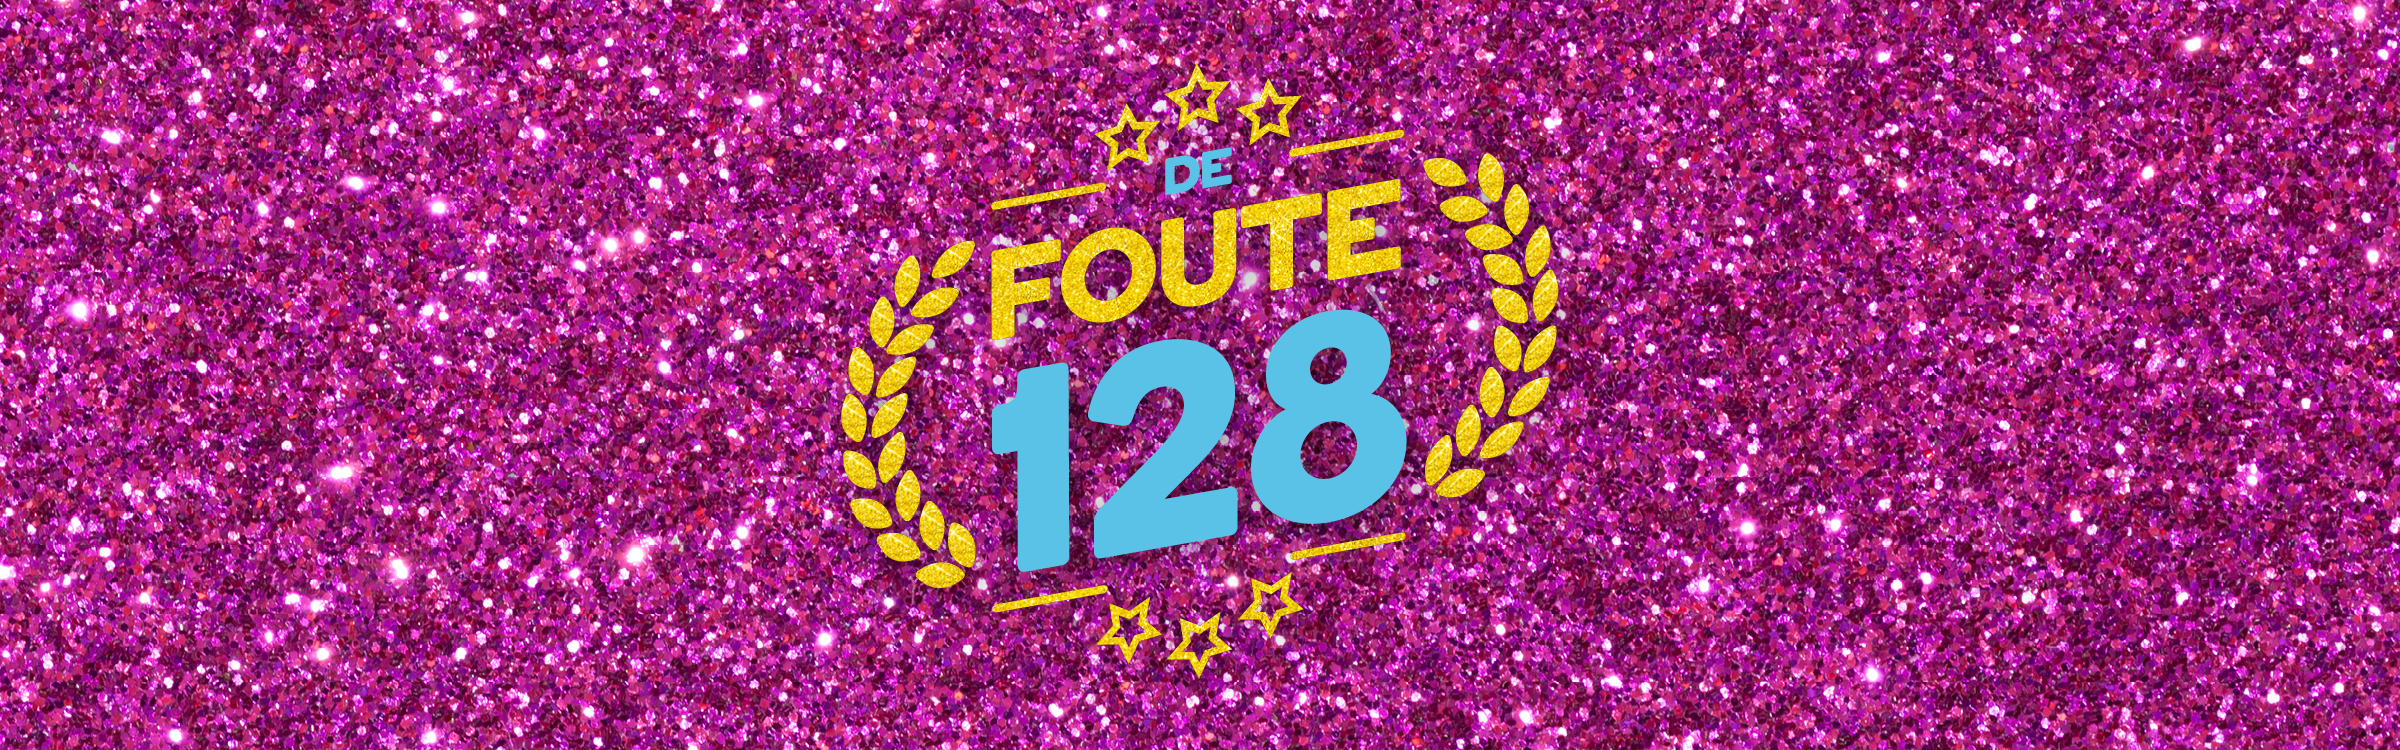 Foute 1282